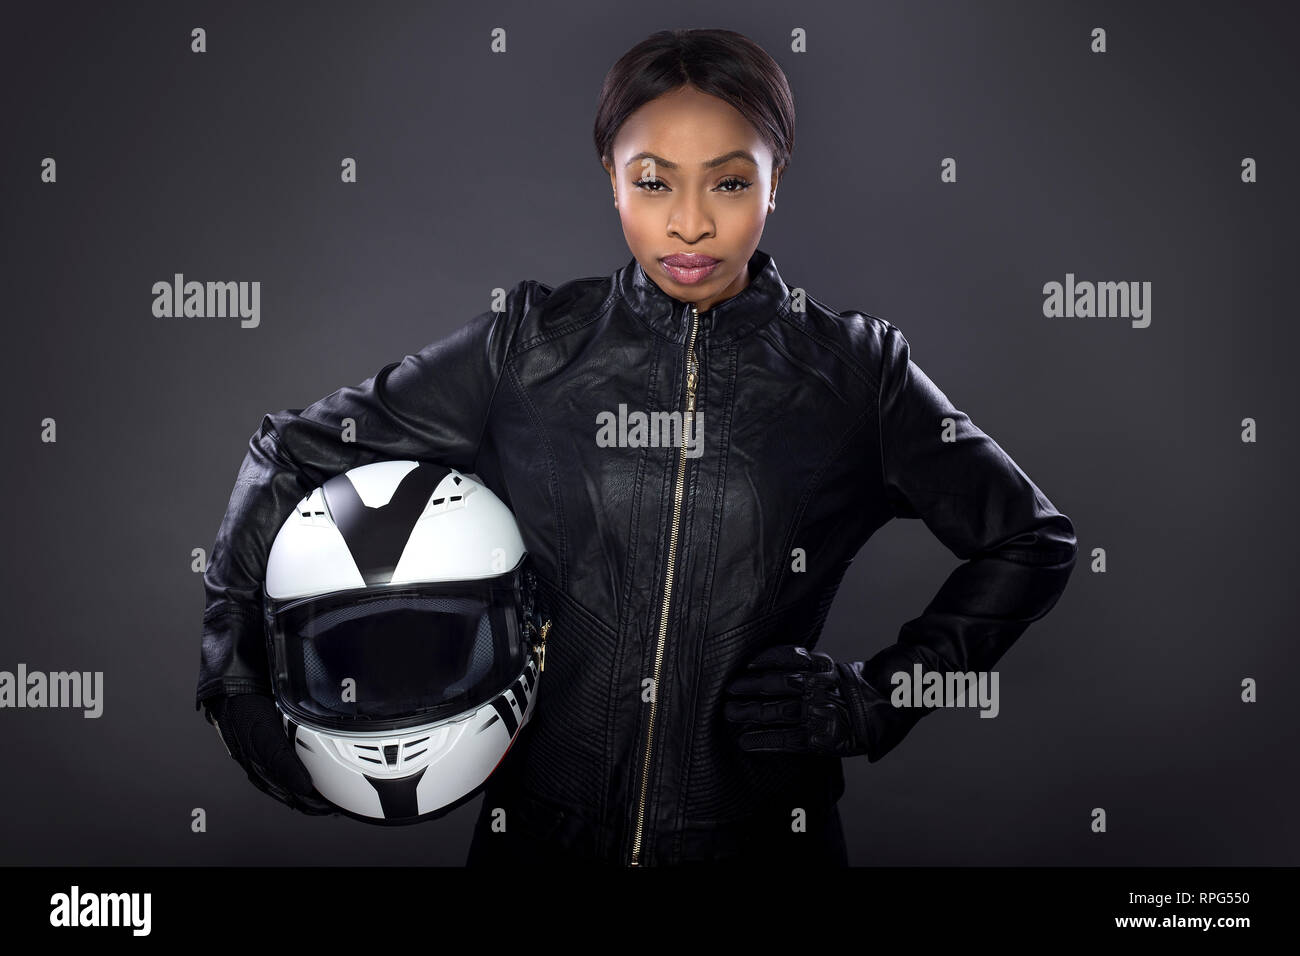 Black Female Motorcycle Biker Or Race Car Driver Or Stuntwoman Wearing Leather Racing Suit And Holding A Protective Helmet She Is Standing Confident Stock Photo Alamy